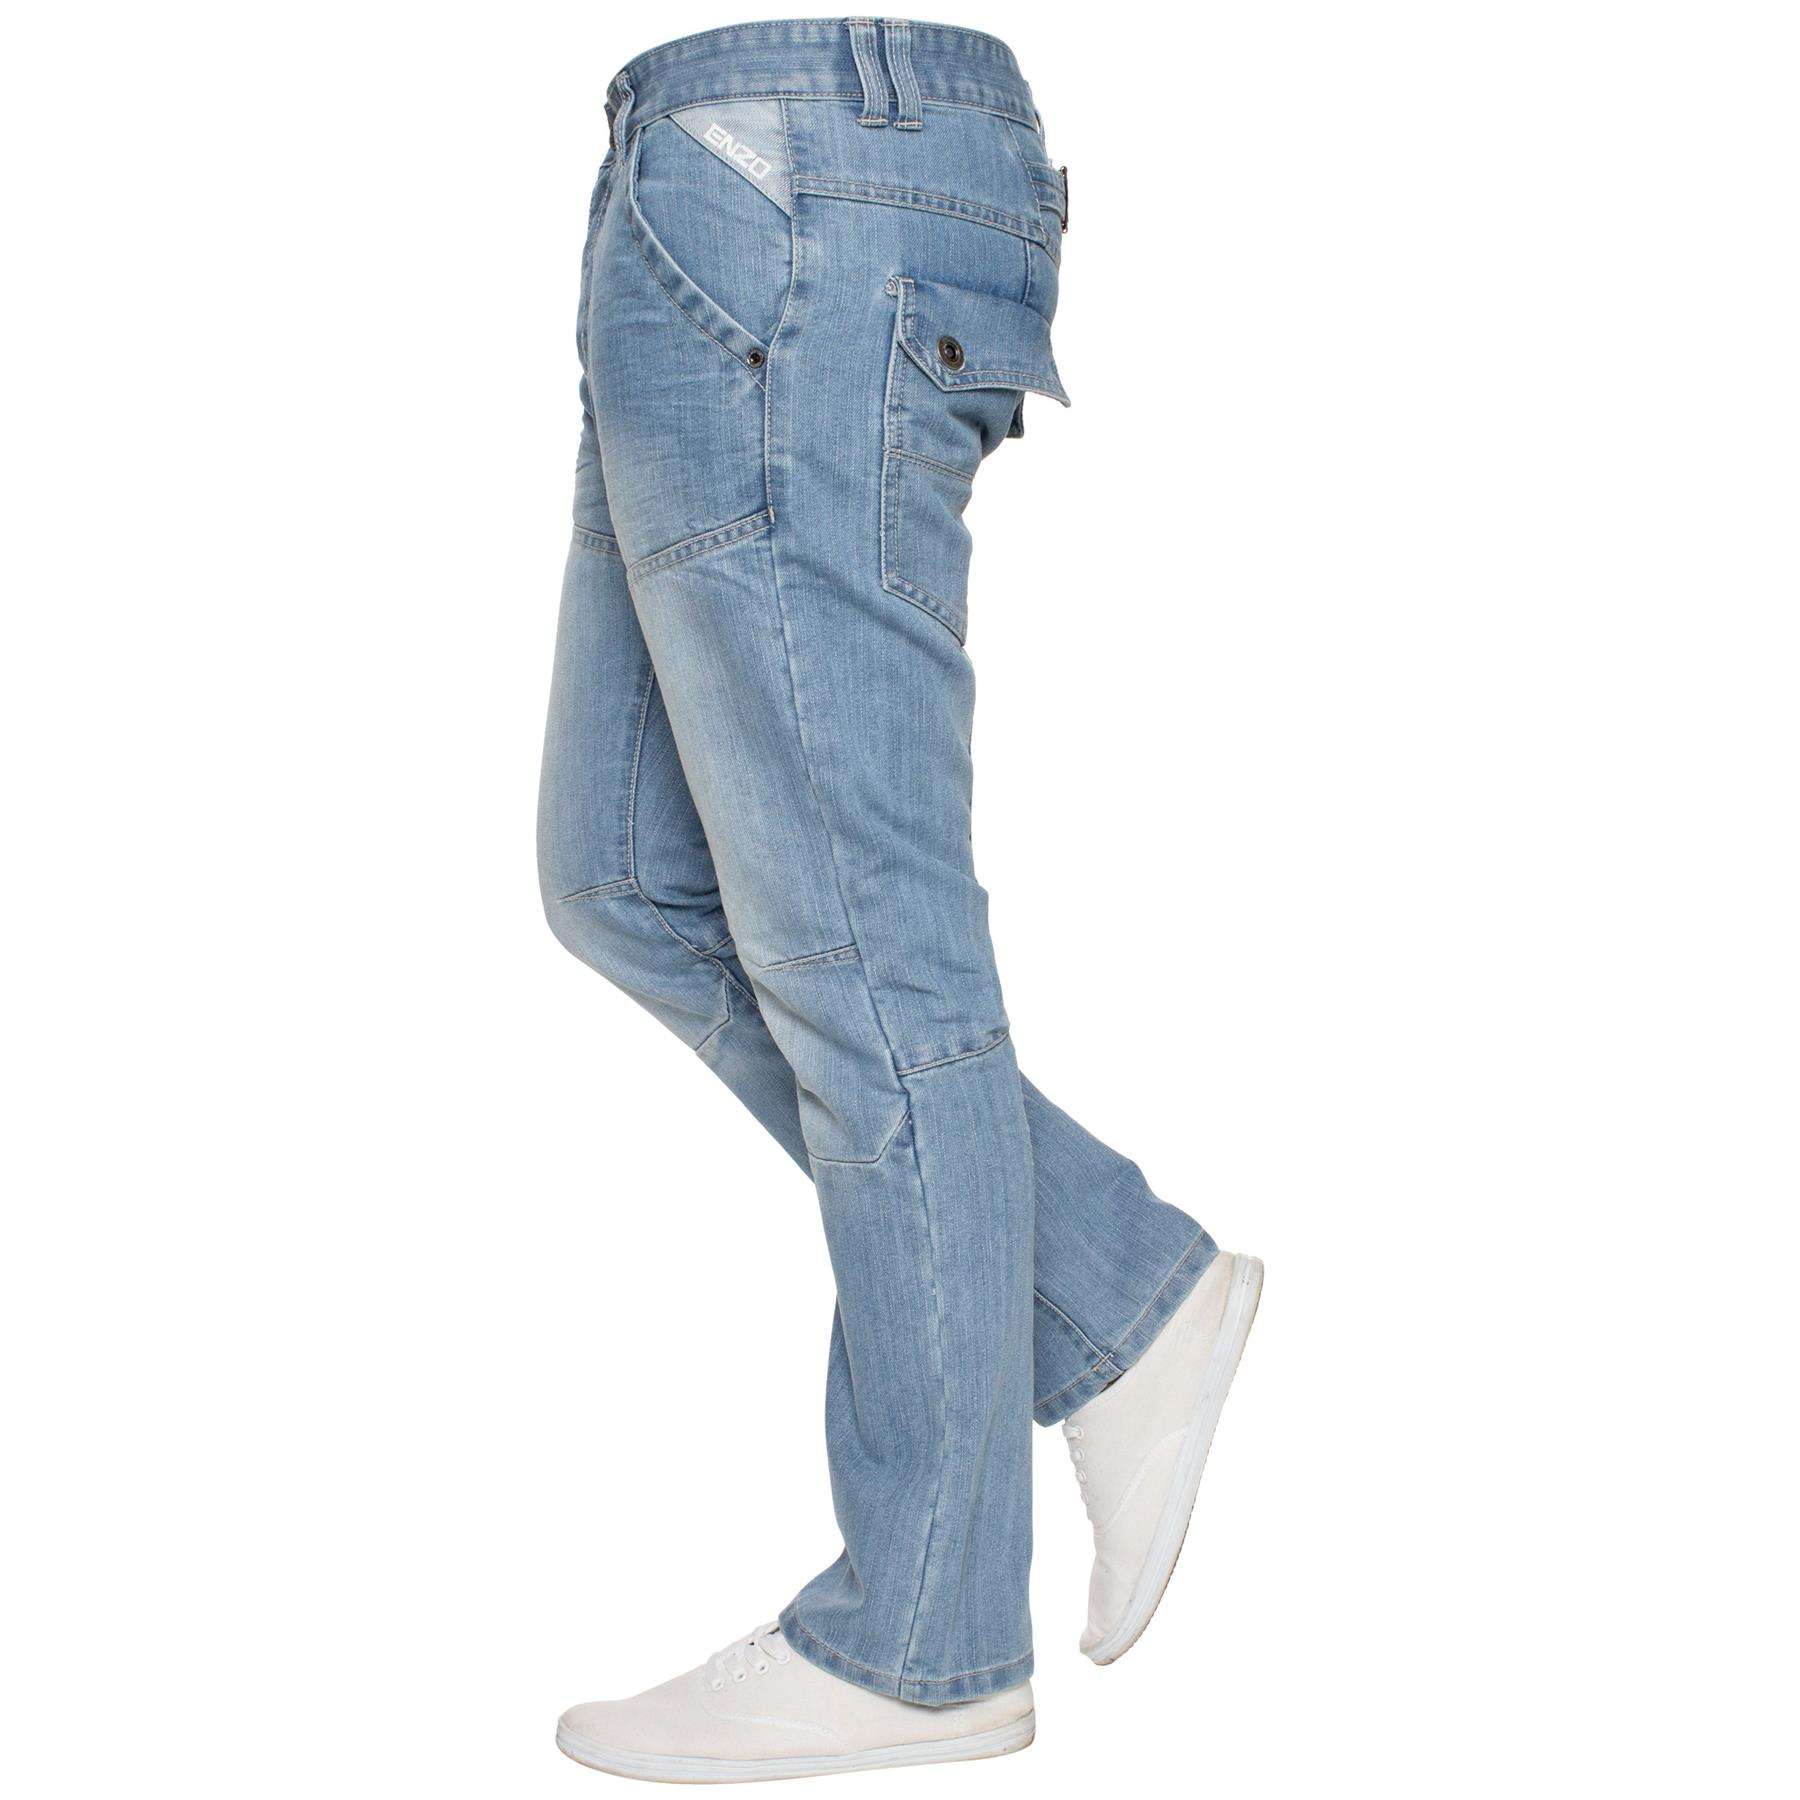 Enzo-Mens-Jeans-Big-Tall-Leg-King-Size-Denim-Pants-Chino-Trousers-Waist-44-034-60-034 miniature 52